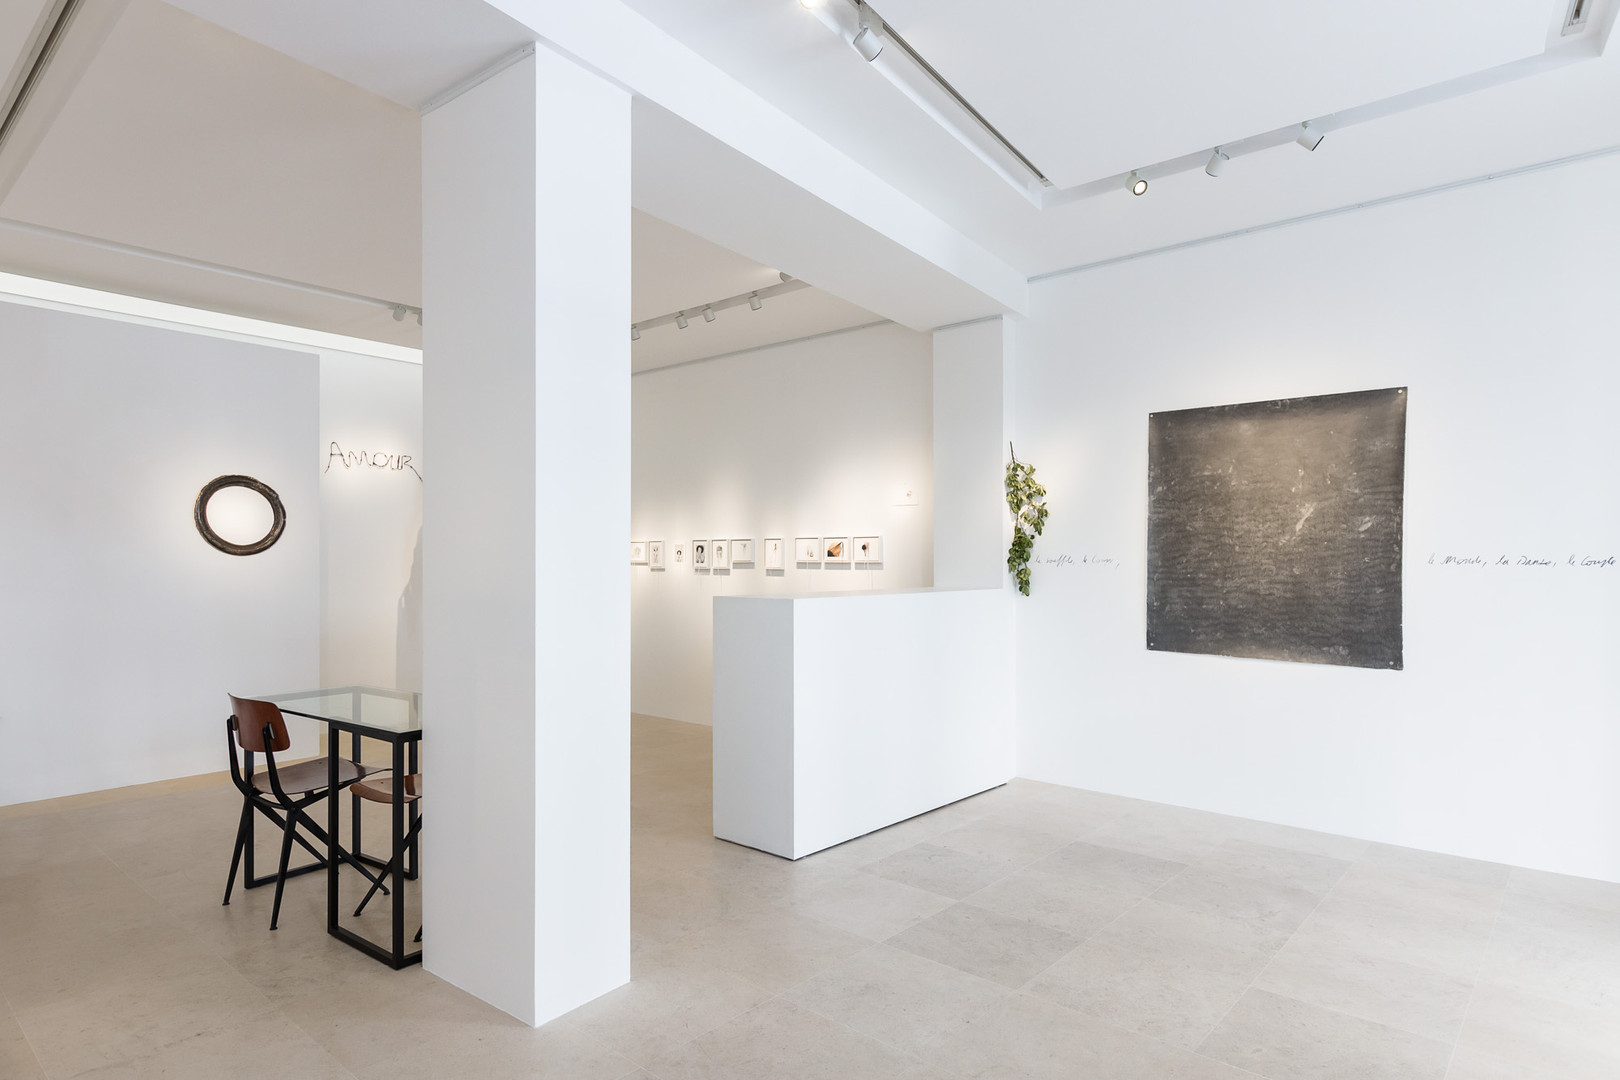 31 PROJECT / Galerie Charles-Wesley Hourdé